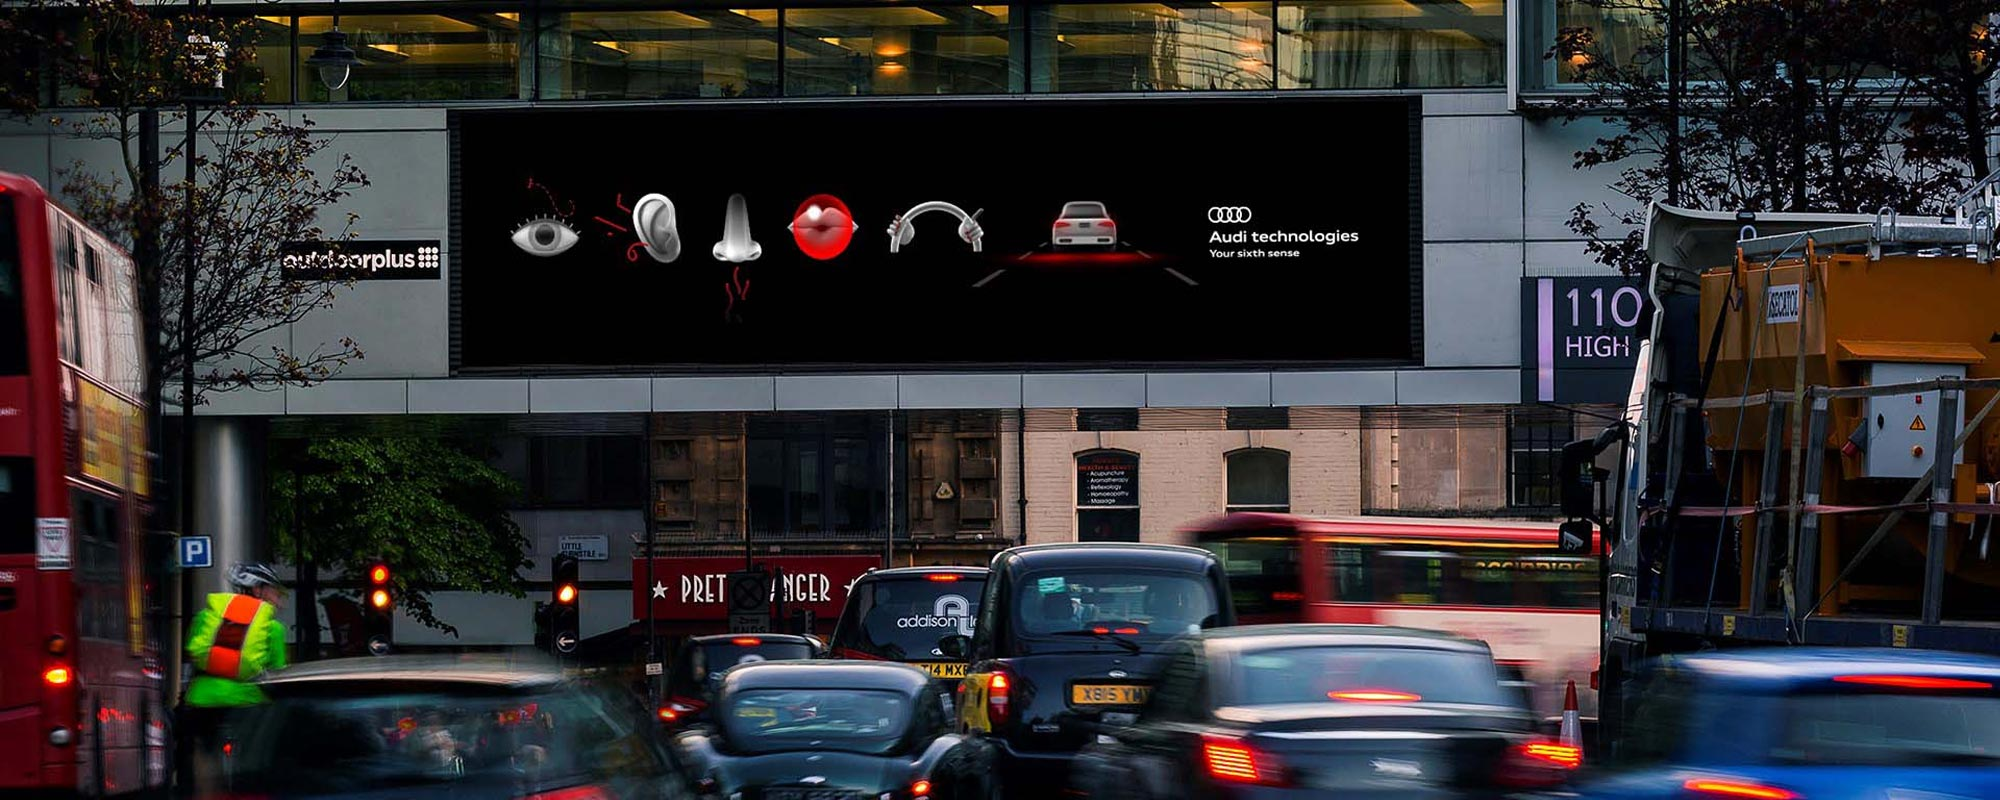 Audi Delivers Contextually-Relevant Ads with Data-Driven DOOH Campaign